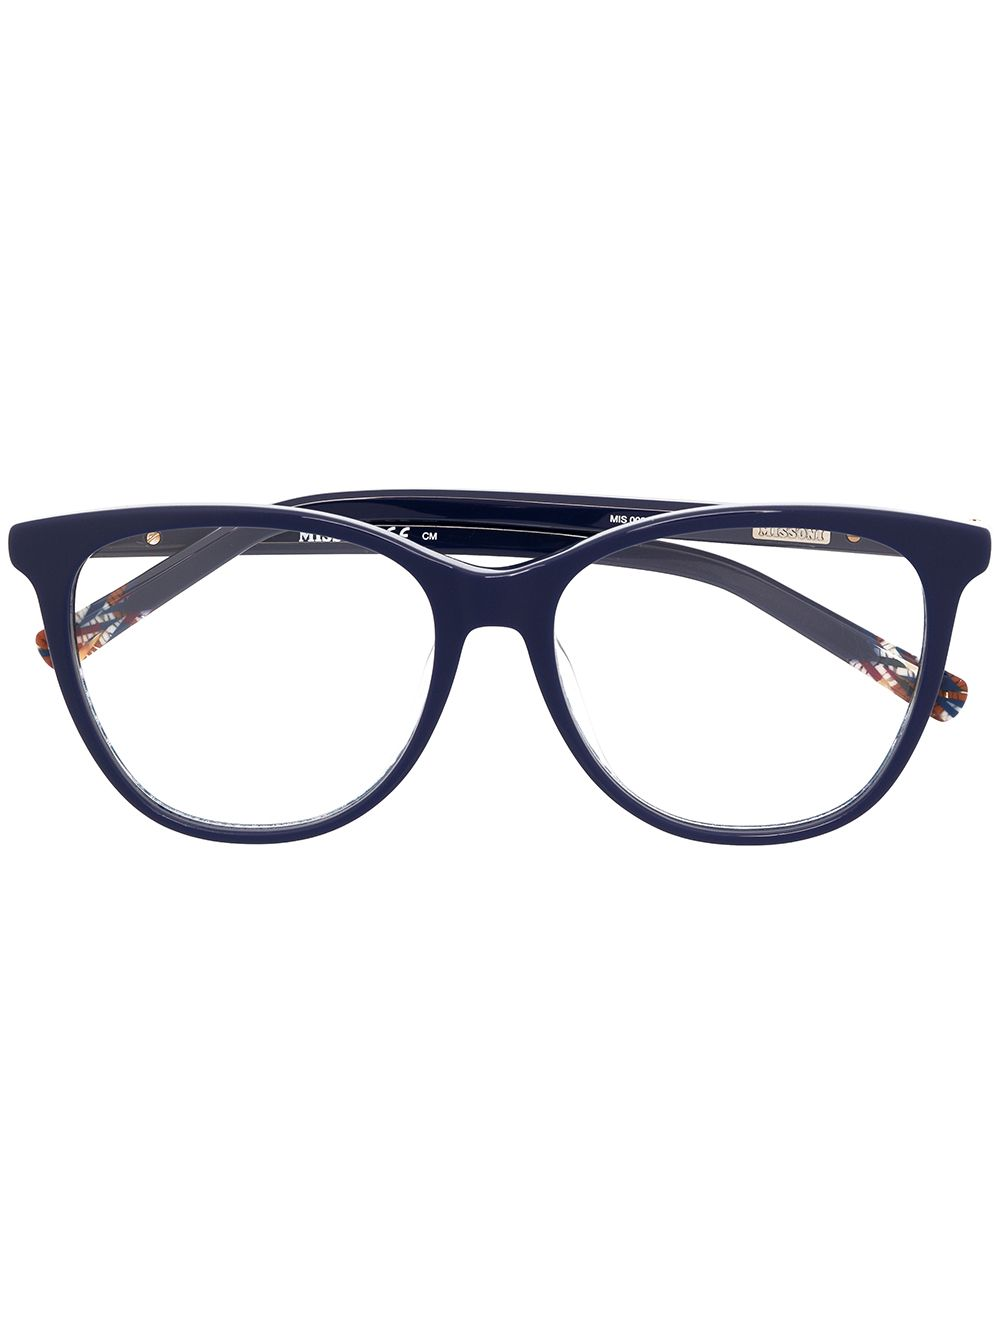 MISSONI EYEWEAR Brille mit Cat-Eye-Gestell - Blau von MISSONI EYEWEAR